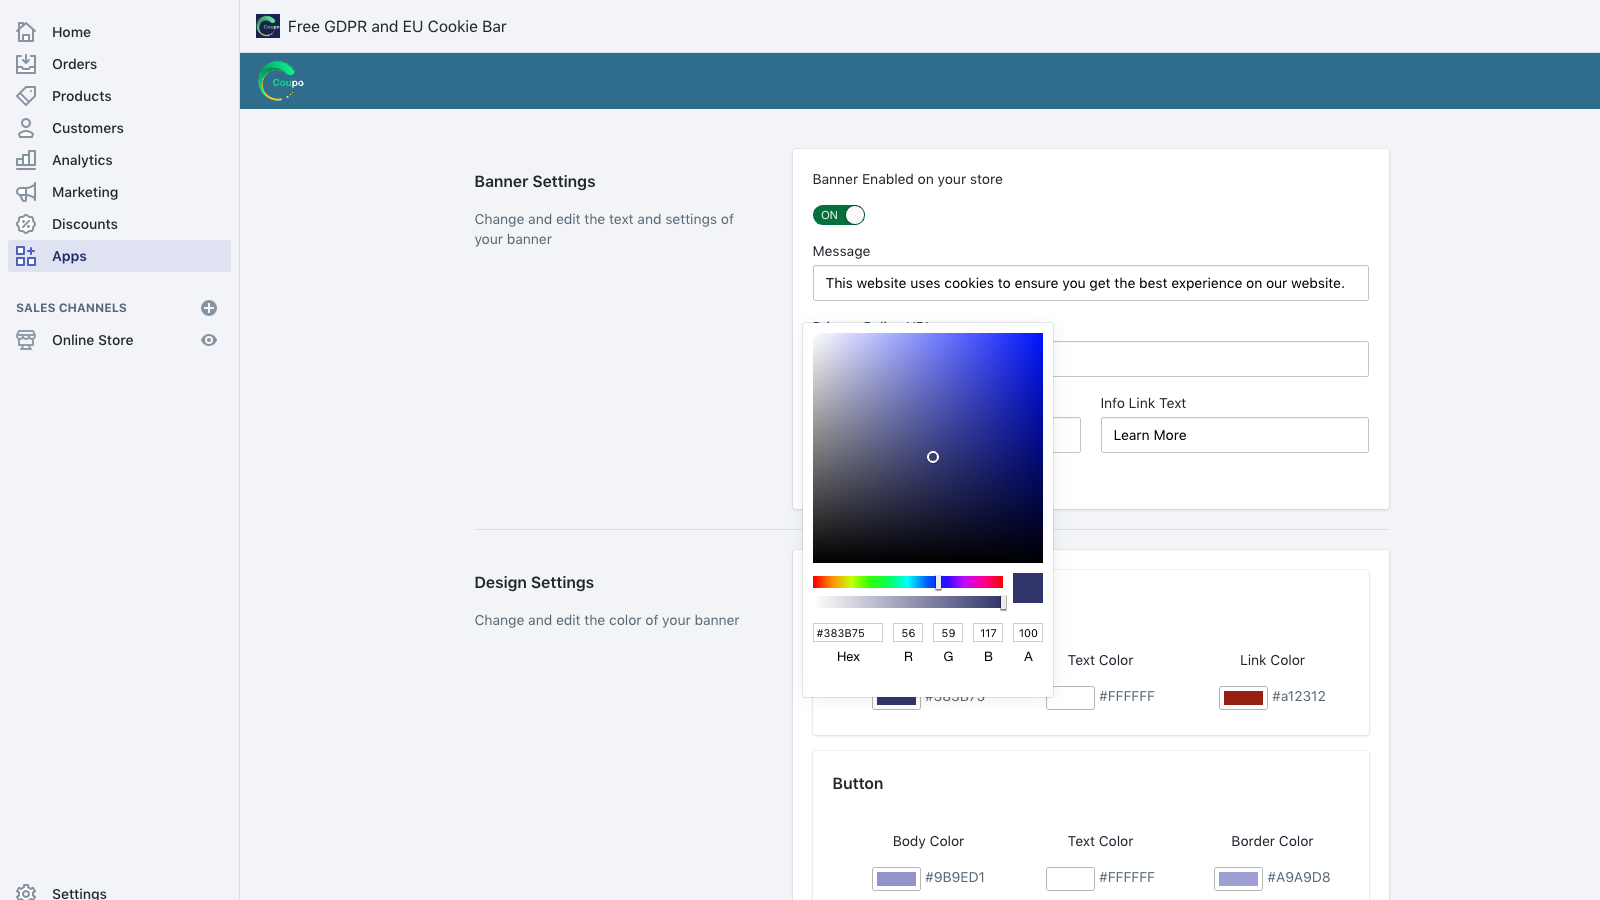 Customize the text and colors to match your themes